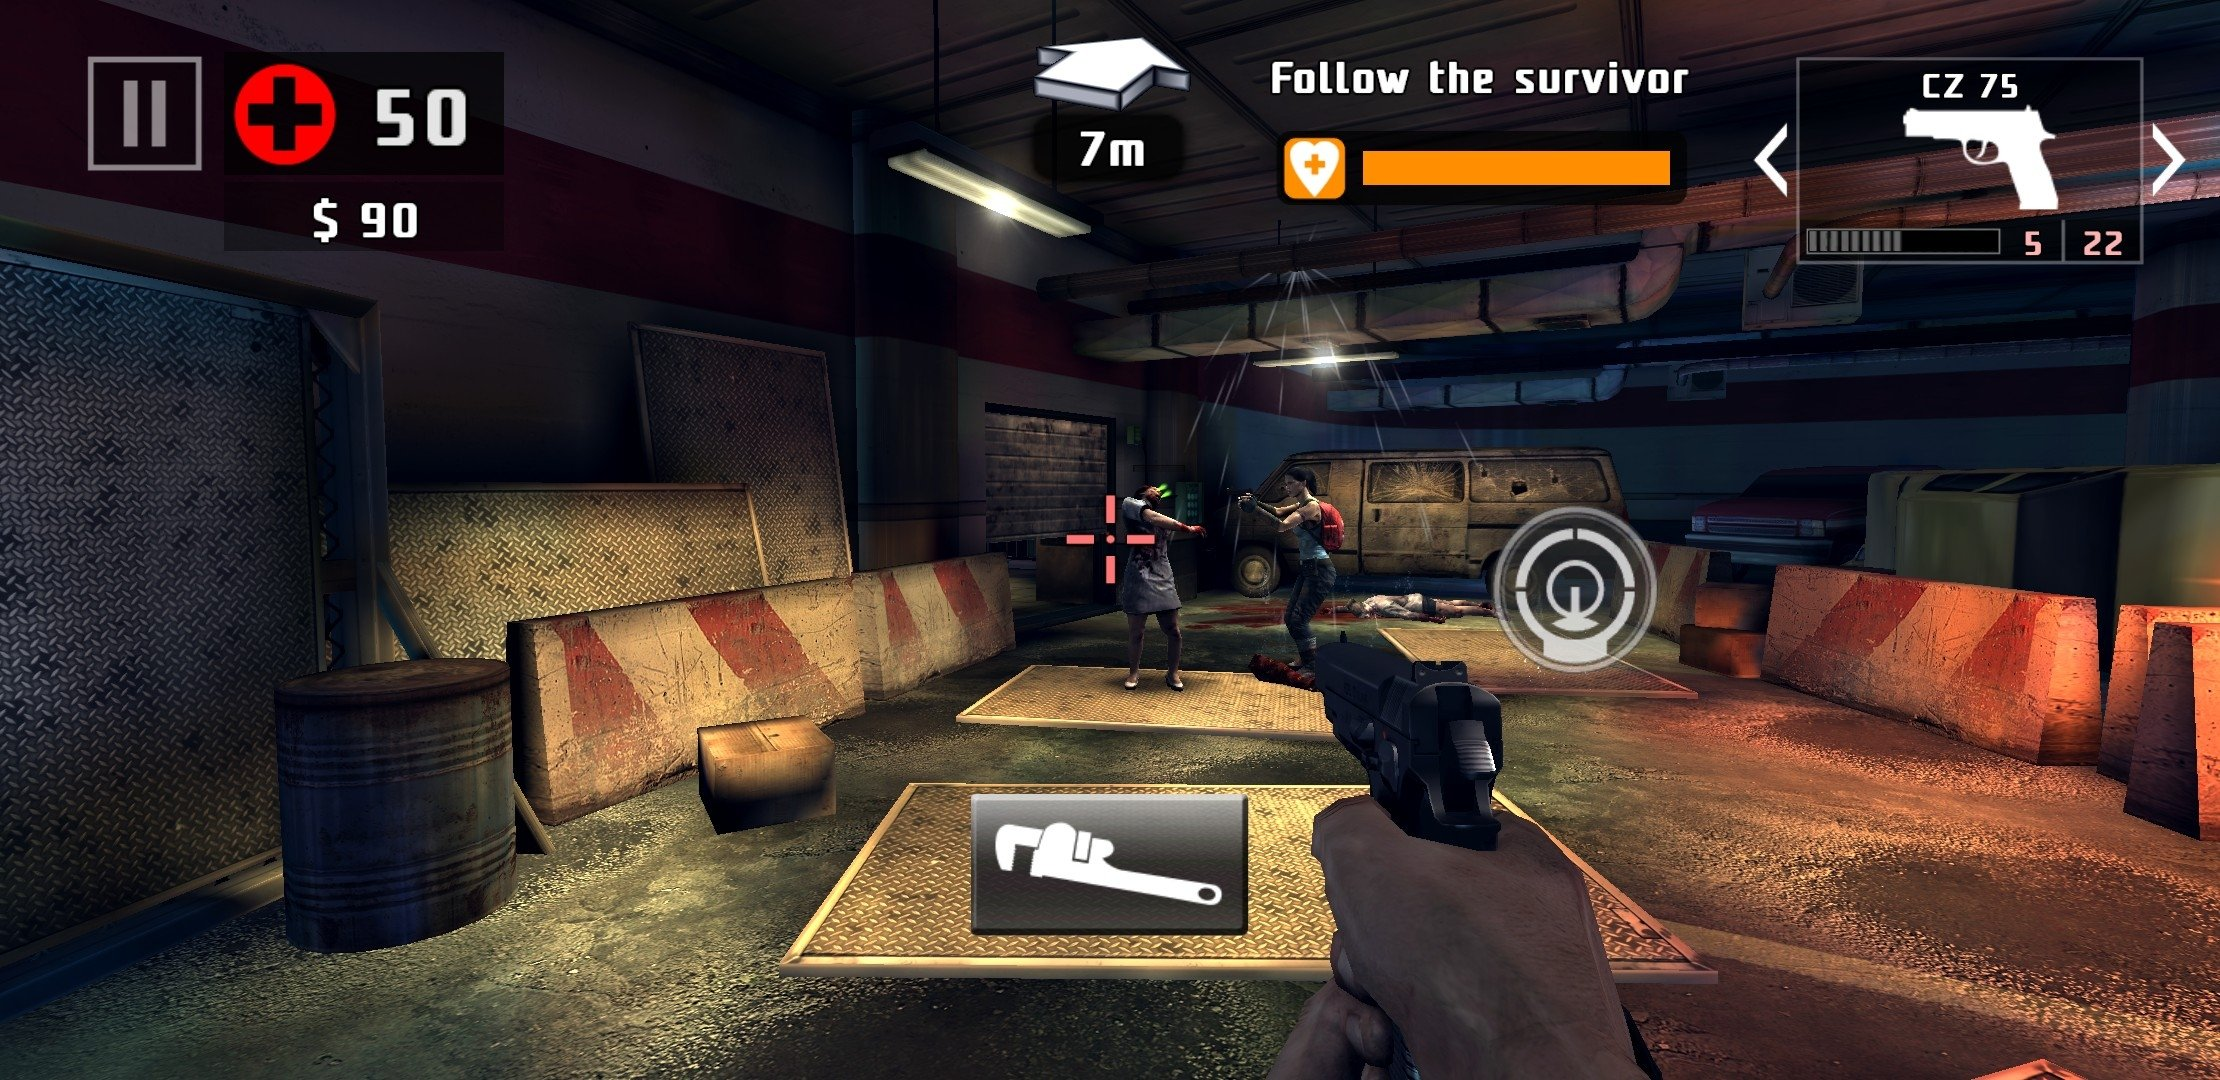 Dead Trigger 2 1 6 8 Download For Android Apk Free